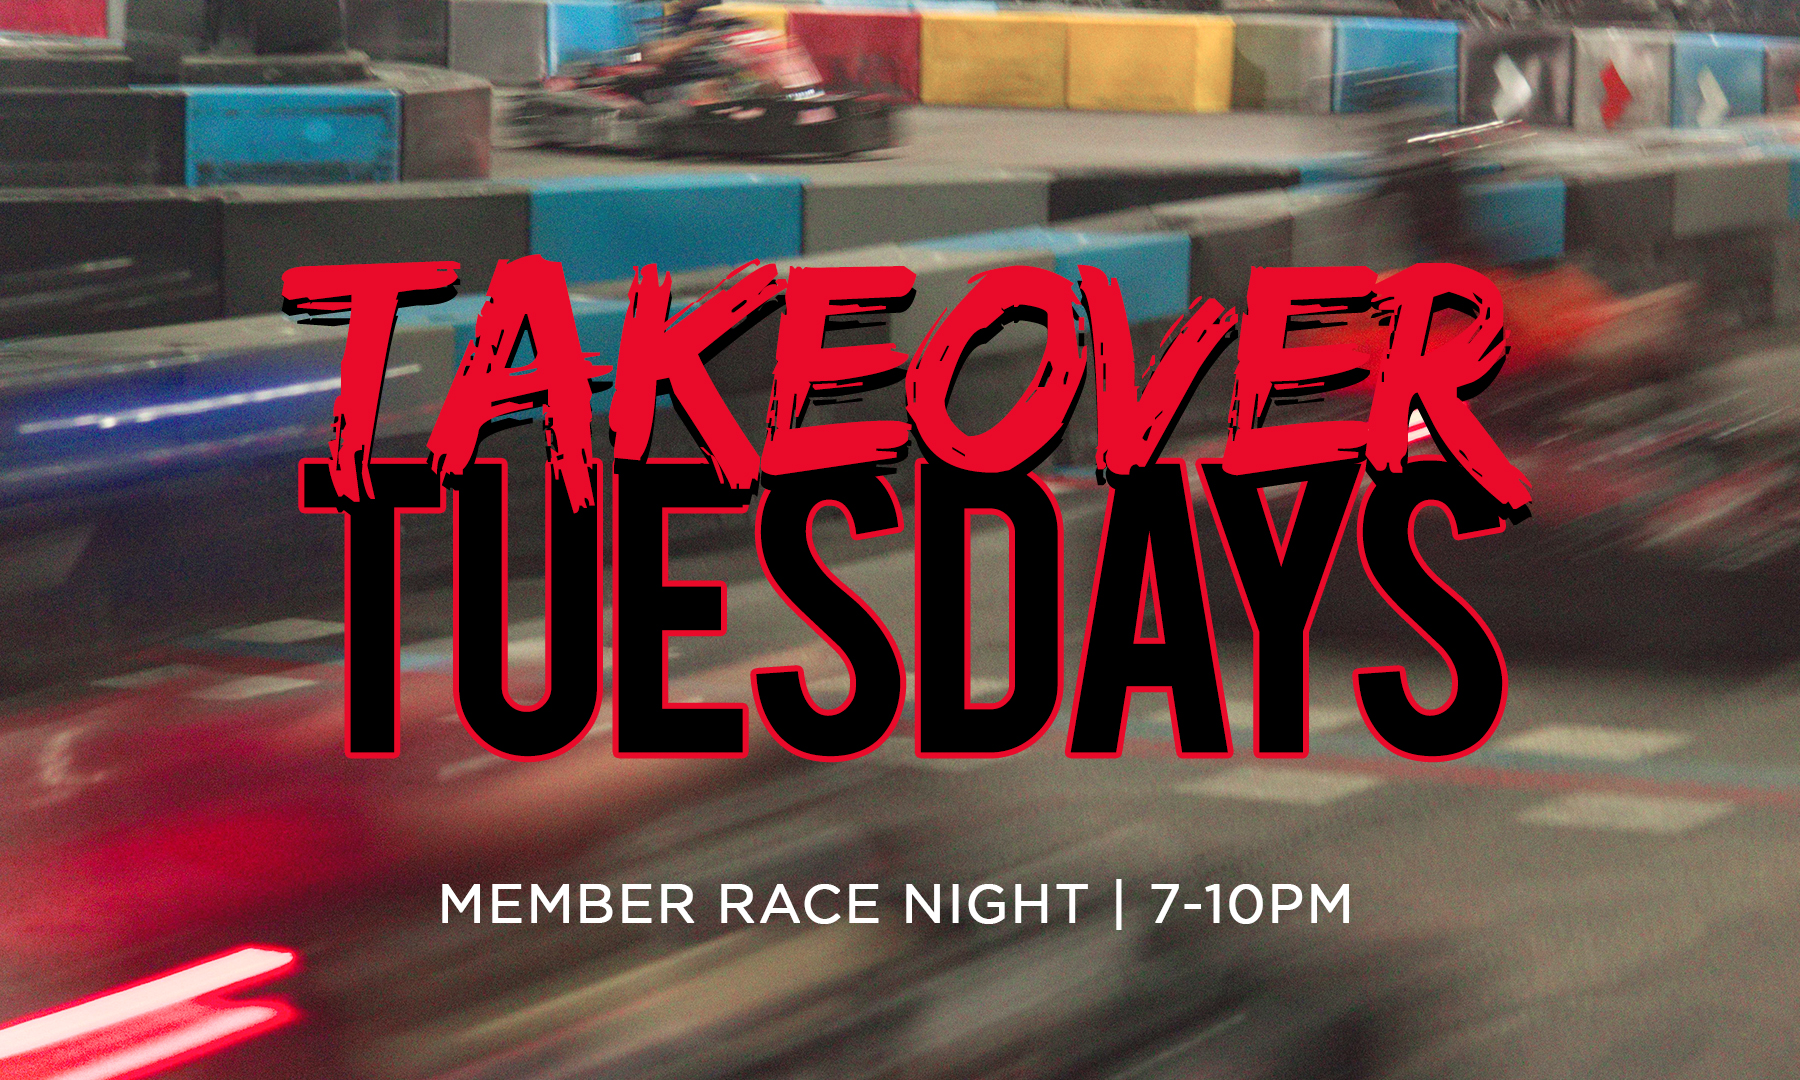 Takeover Tuesdays Race Night Special